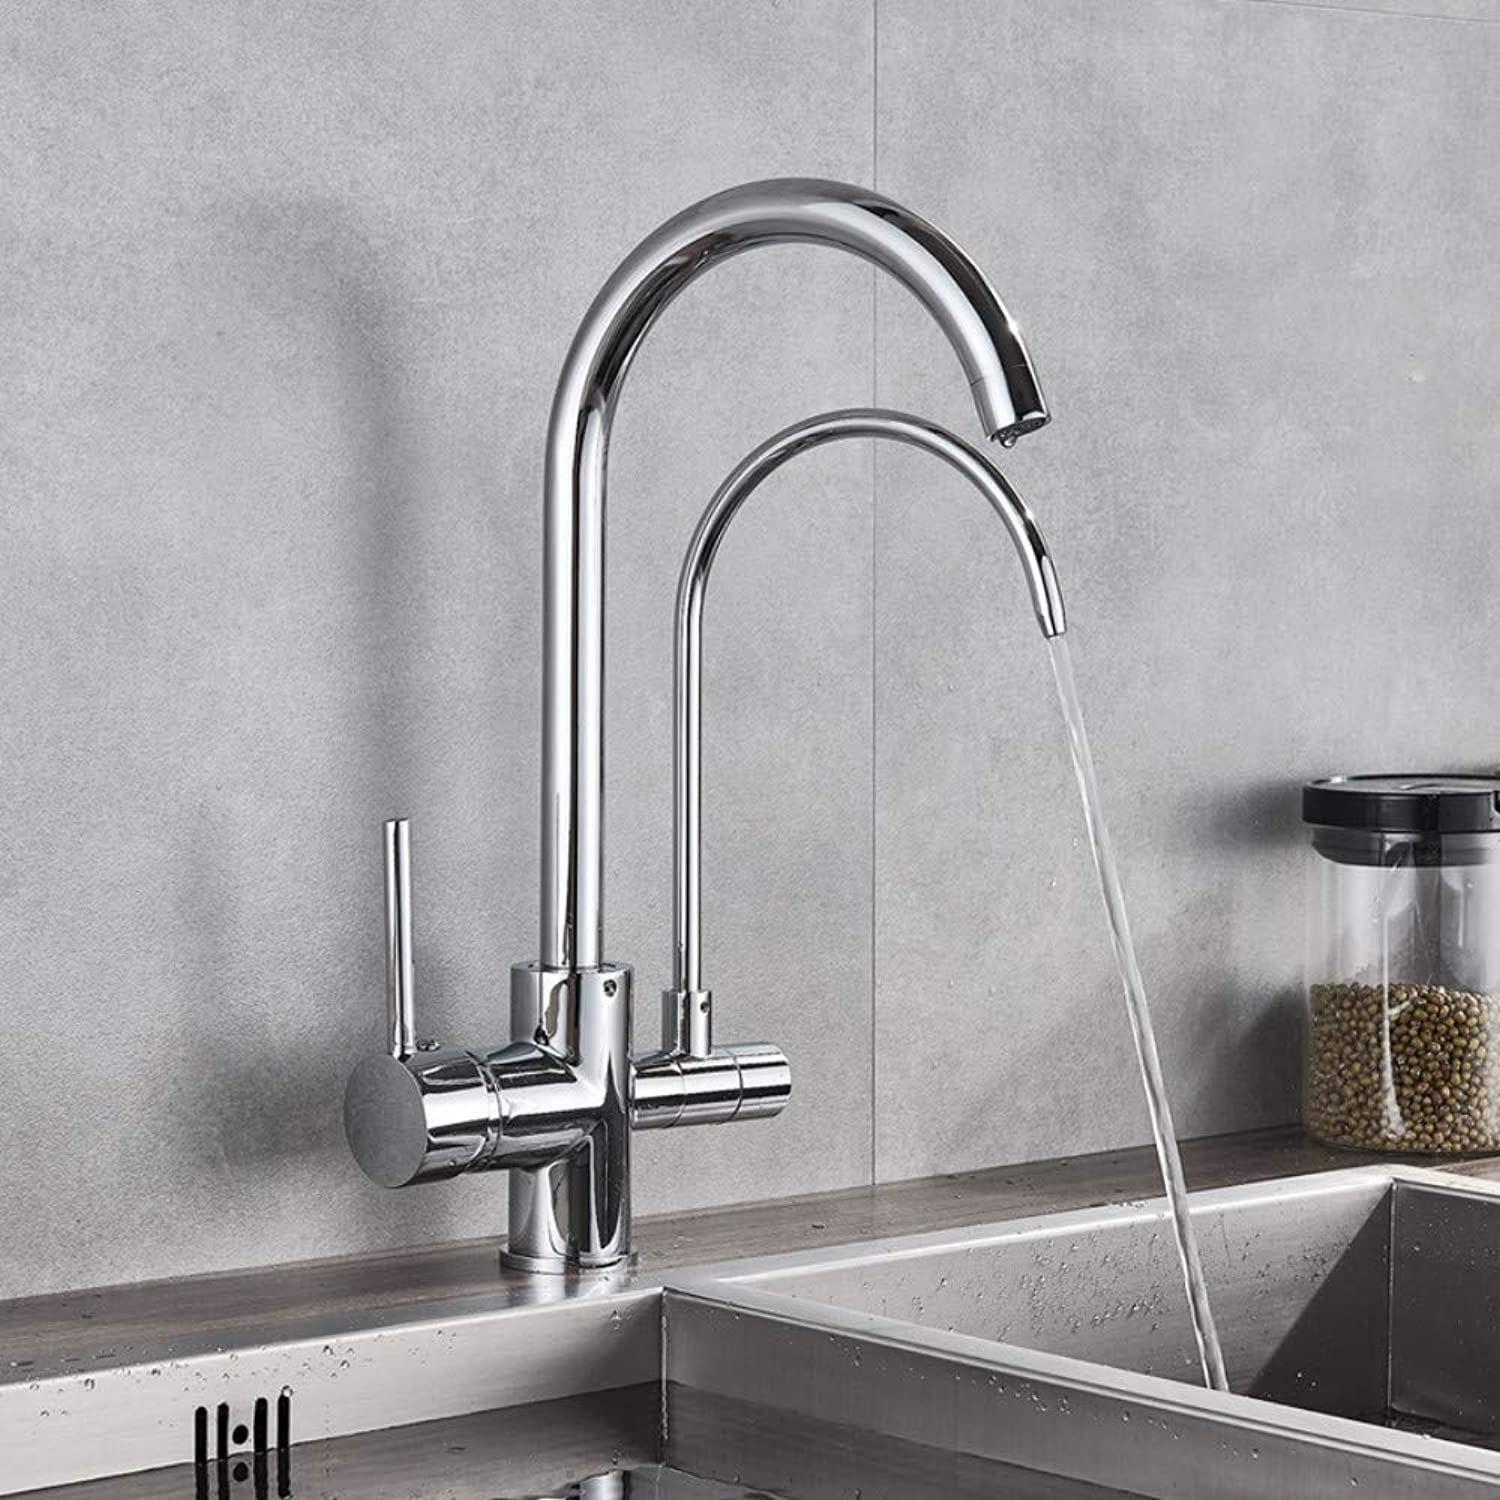 Ayhuir Purification Kitchen Faucets Bathroom Kitchen Mixer Tap 360 redation with Water Filter Features Mixer Tap Crane for Kitchen